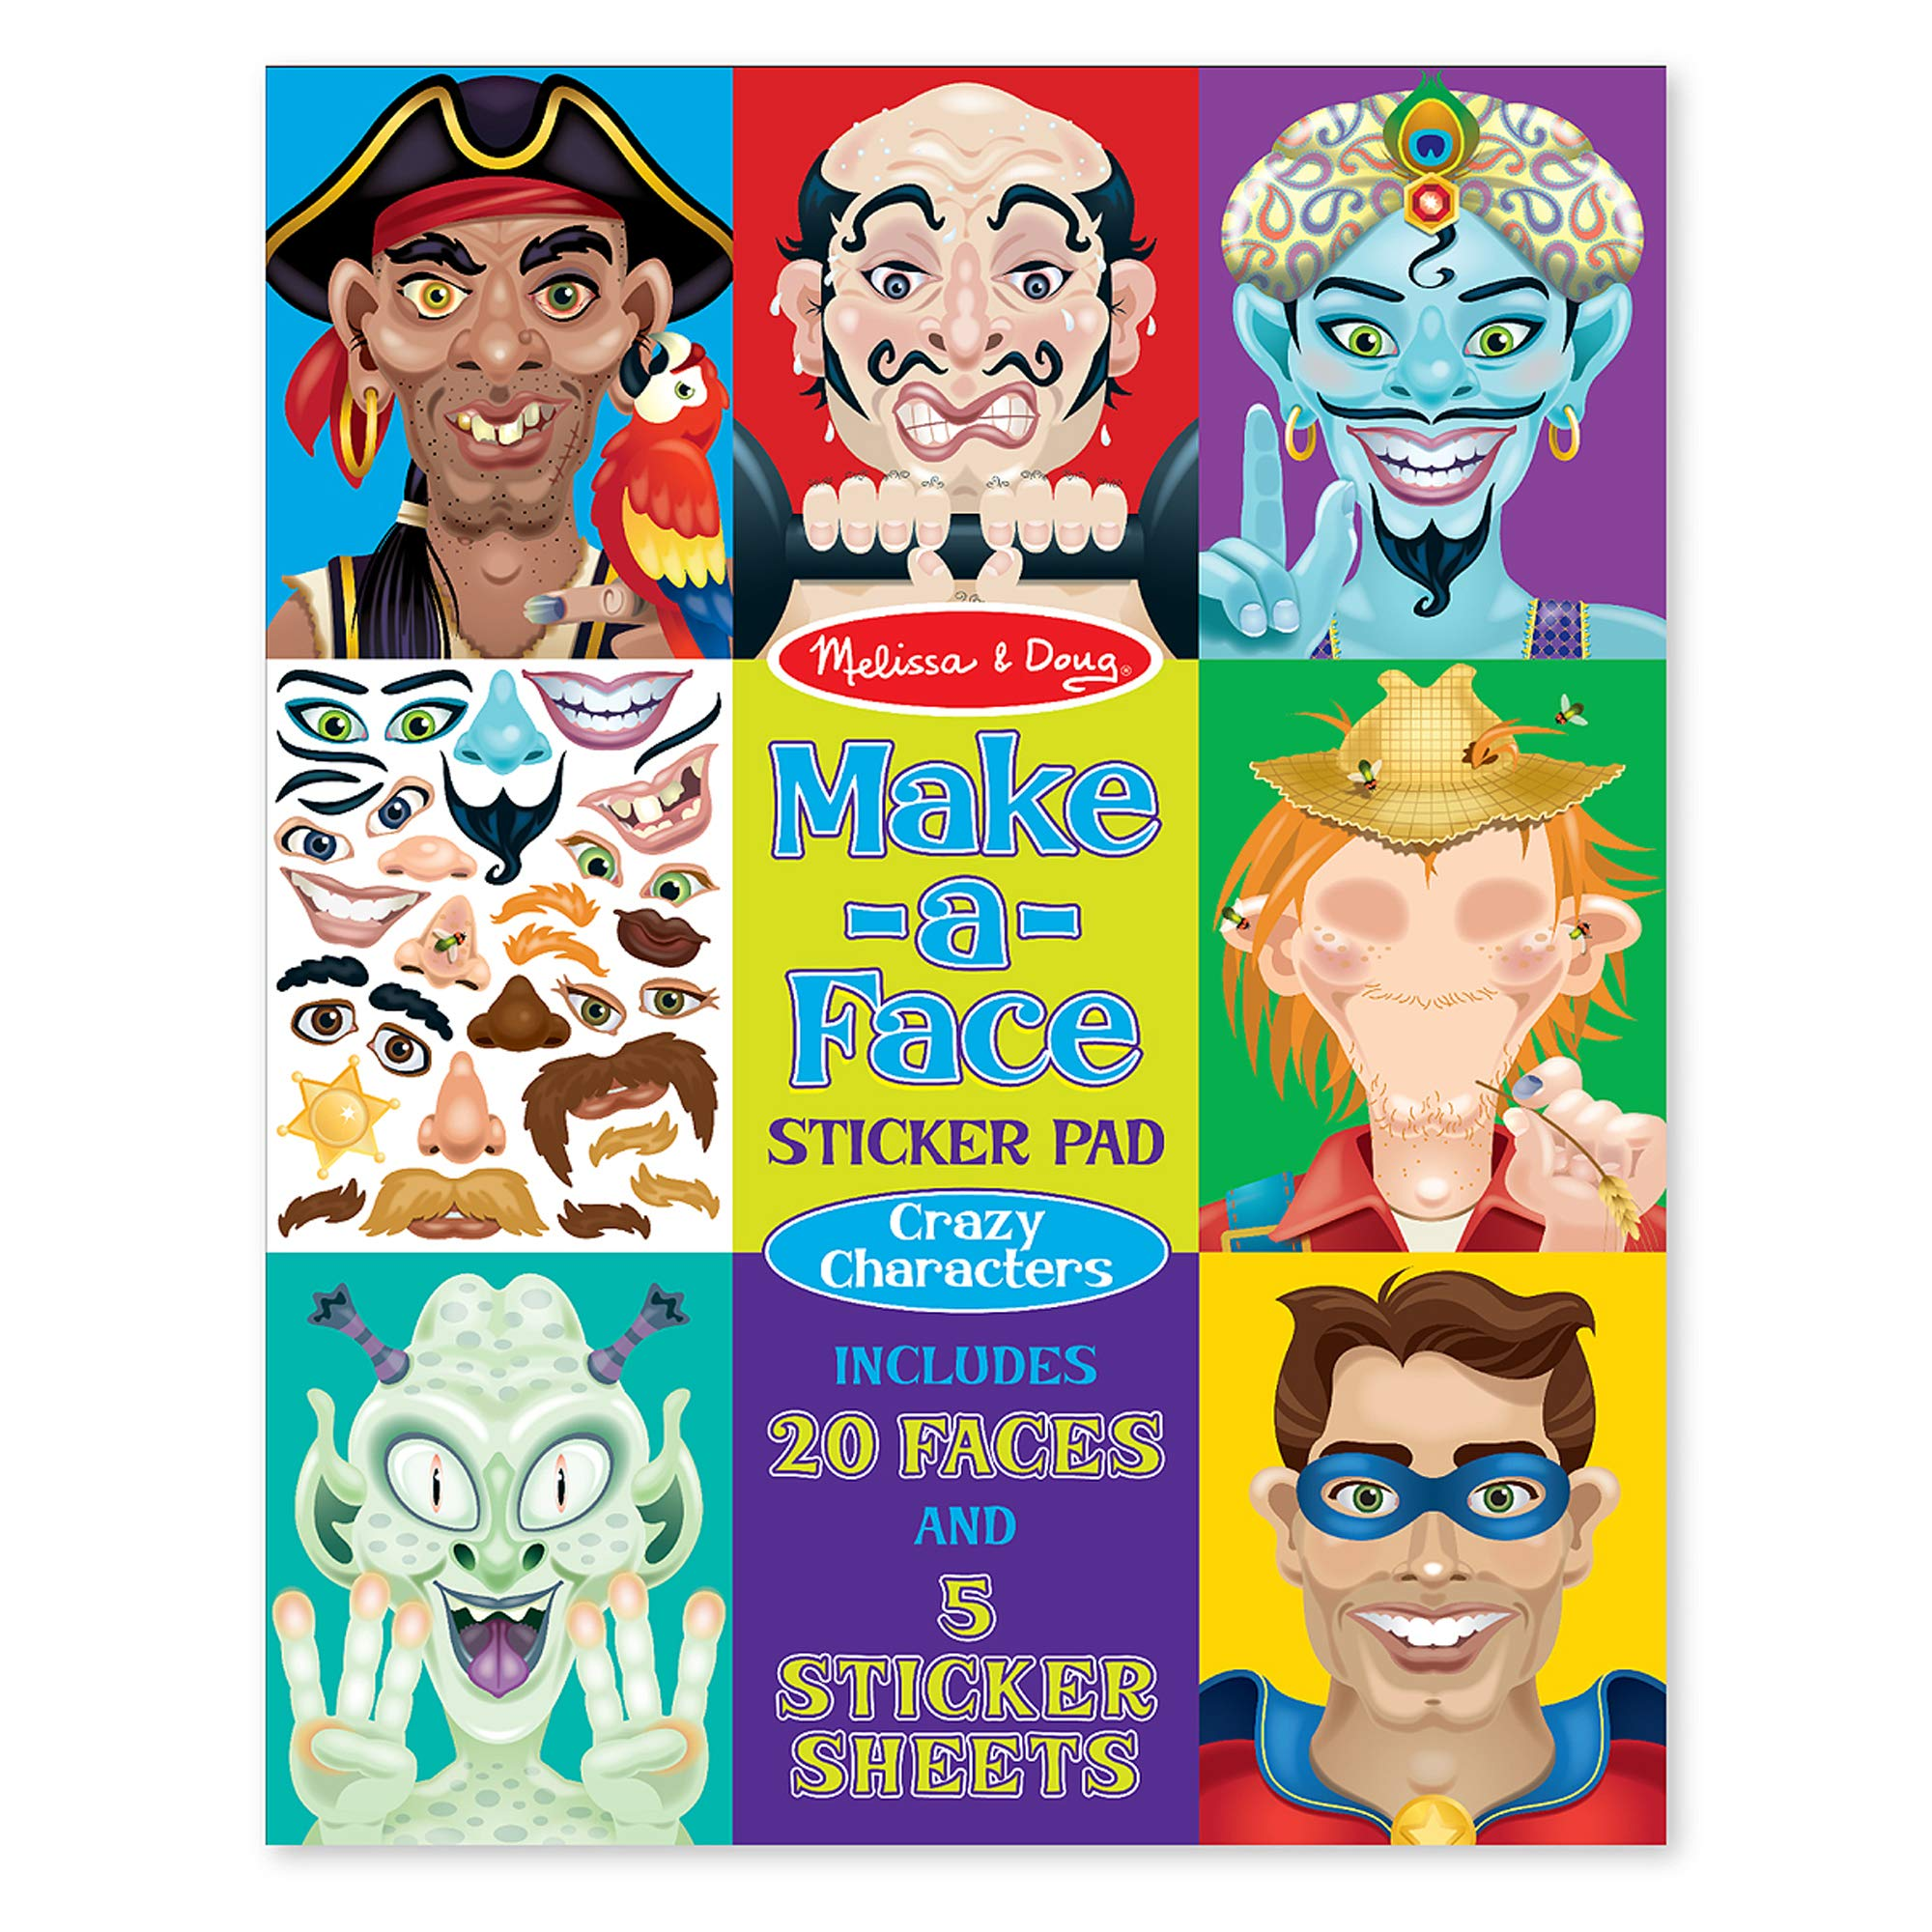 Melissa & Doug Crazy Characters Make-a-Face Sticker Pad                Melissa & Doug Water Wow! Bundle - Animals, Alphabet and Numbers                merka Toddler Learning Kit: Letters, Numbers, Shapes and Colors – Recommended for Children Ages 2 to 6 – Complete Kit Contains 58 Flash Cards, Practice Book, Sticker Set and 4 Full-Color Posters